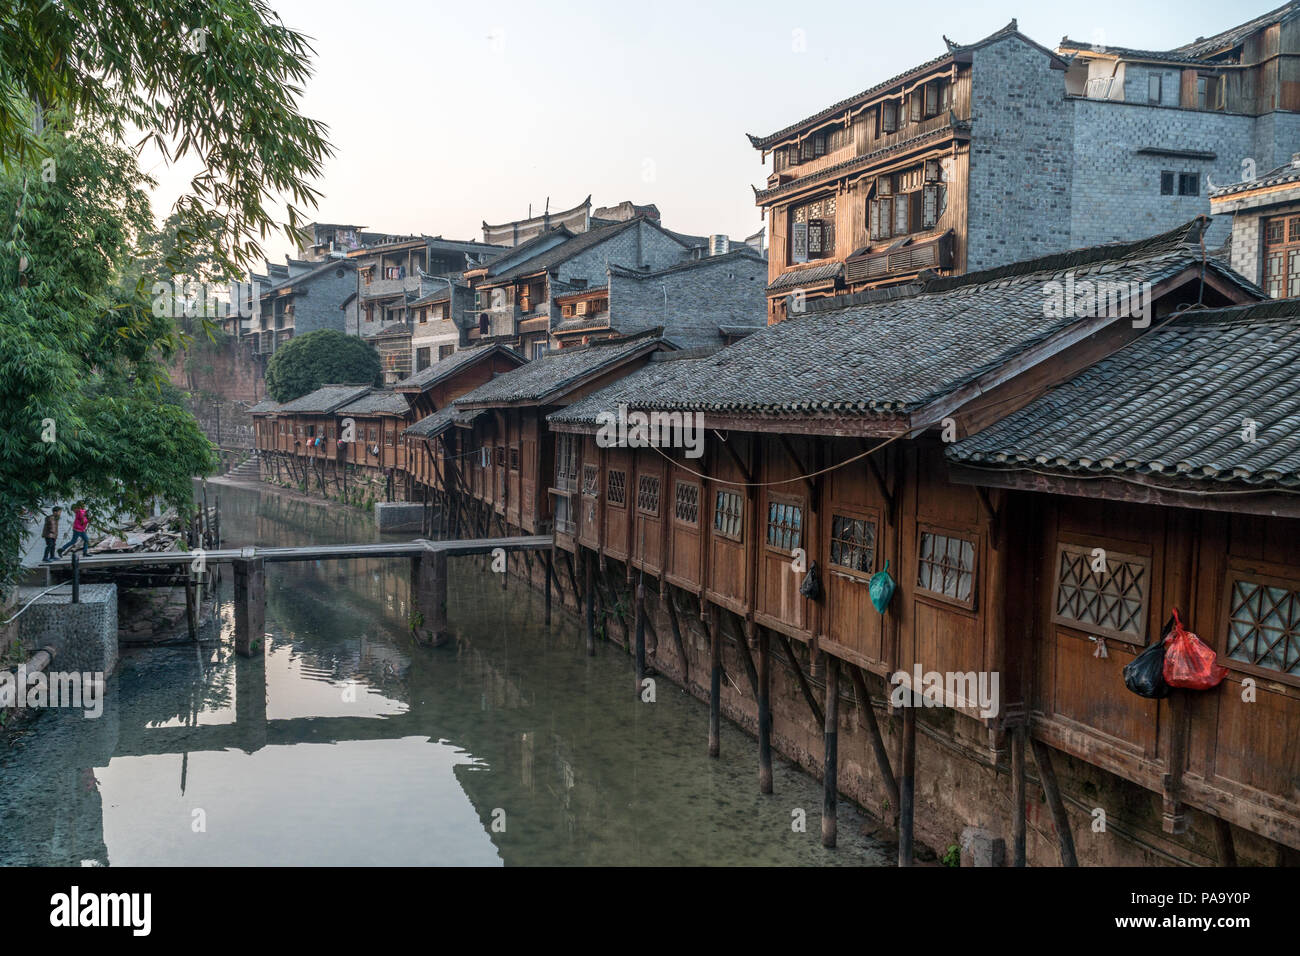 fenghuang ancient town stock photos fenghuang ancient town stock rh alamy com